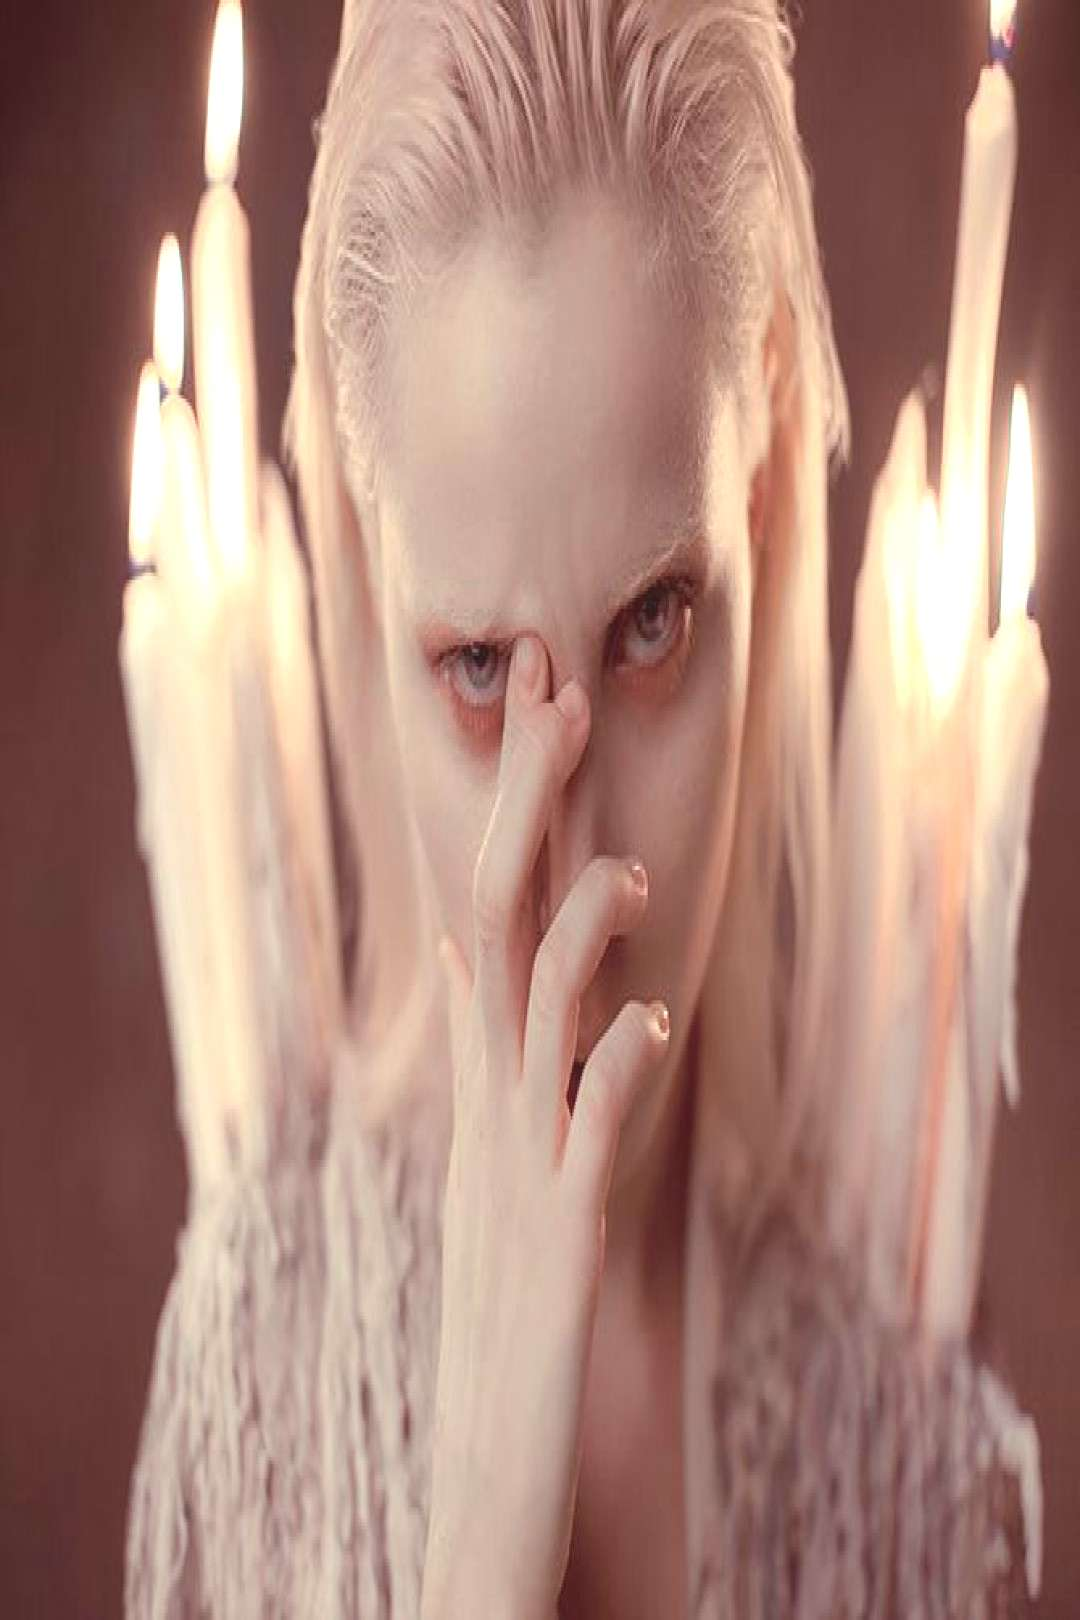 Magical (fashion) editorial photography by Ekaterina Belinskaya - Bleaq , Magical (fashion) editor